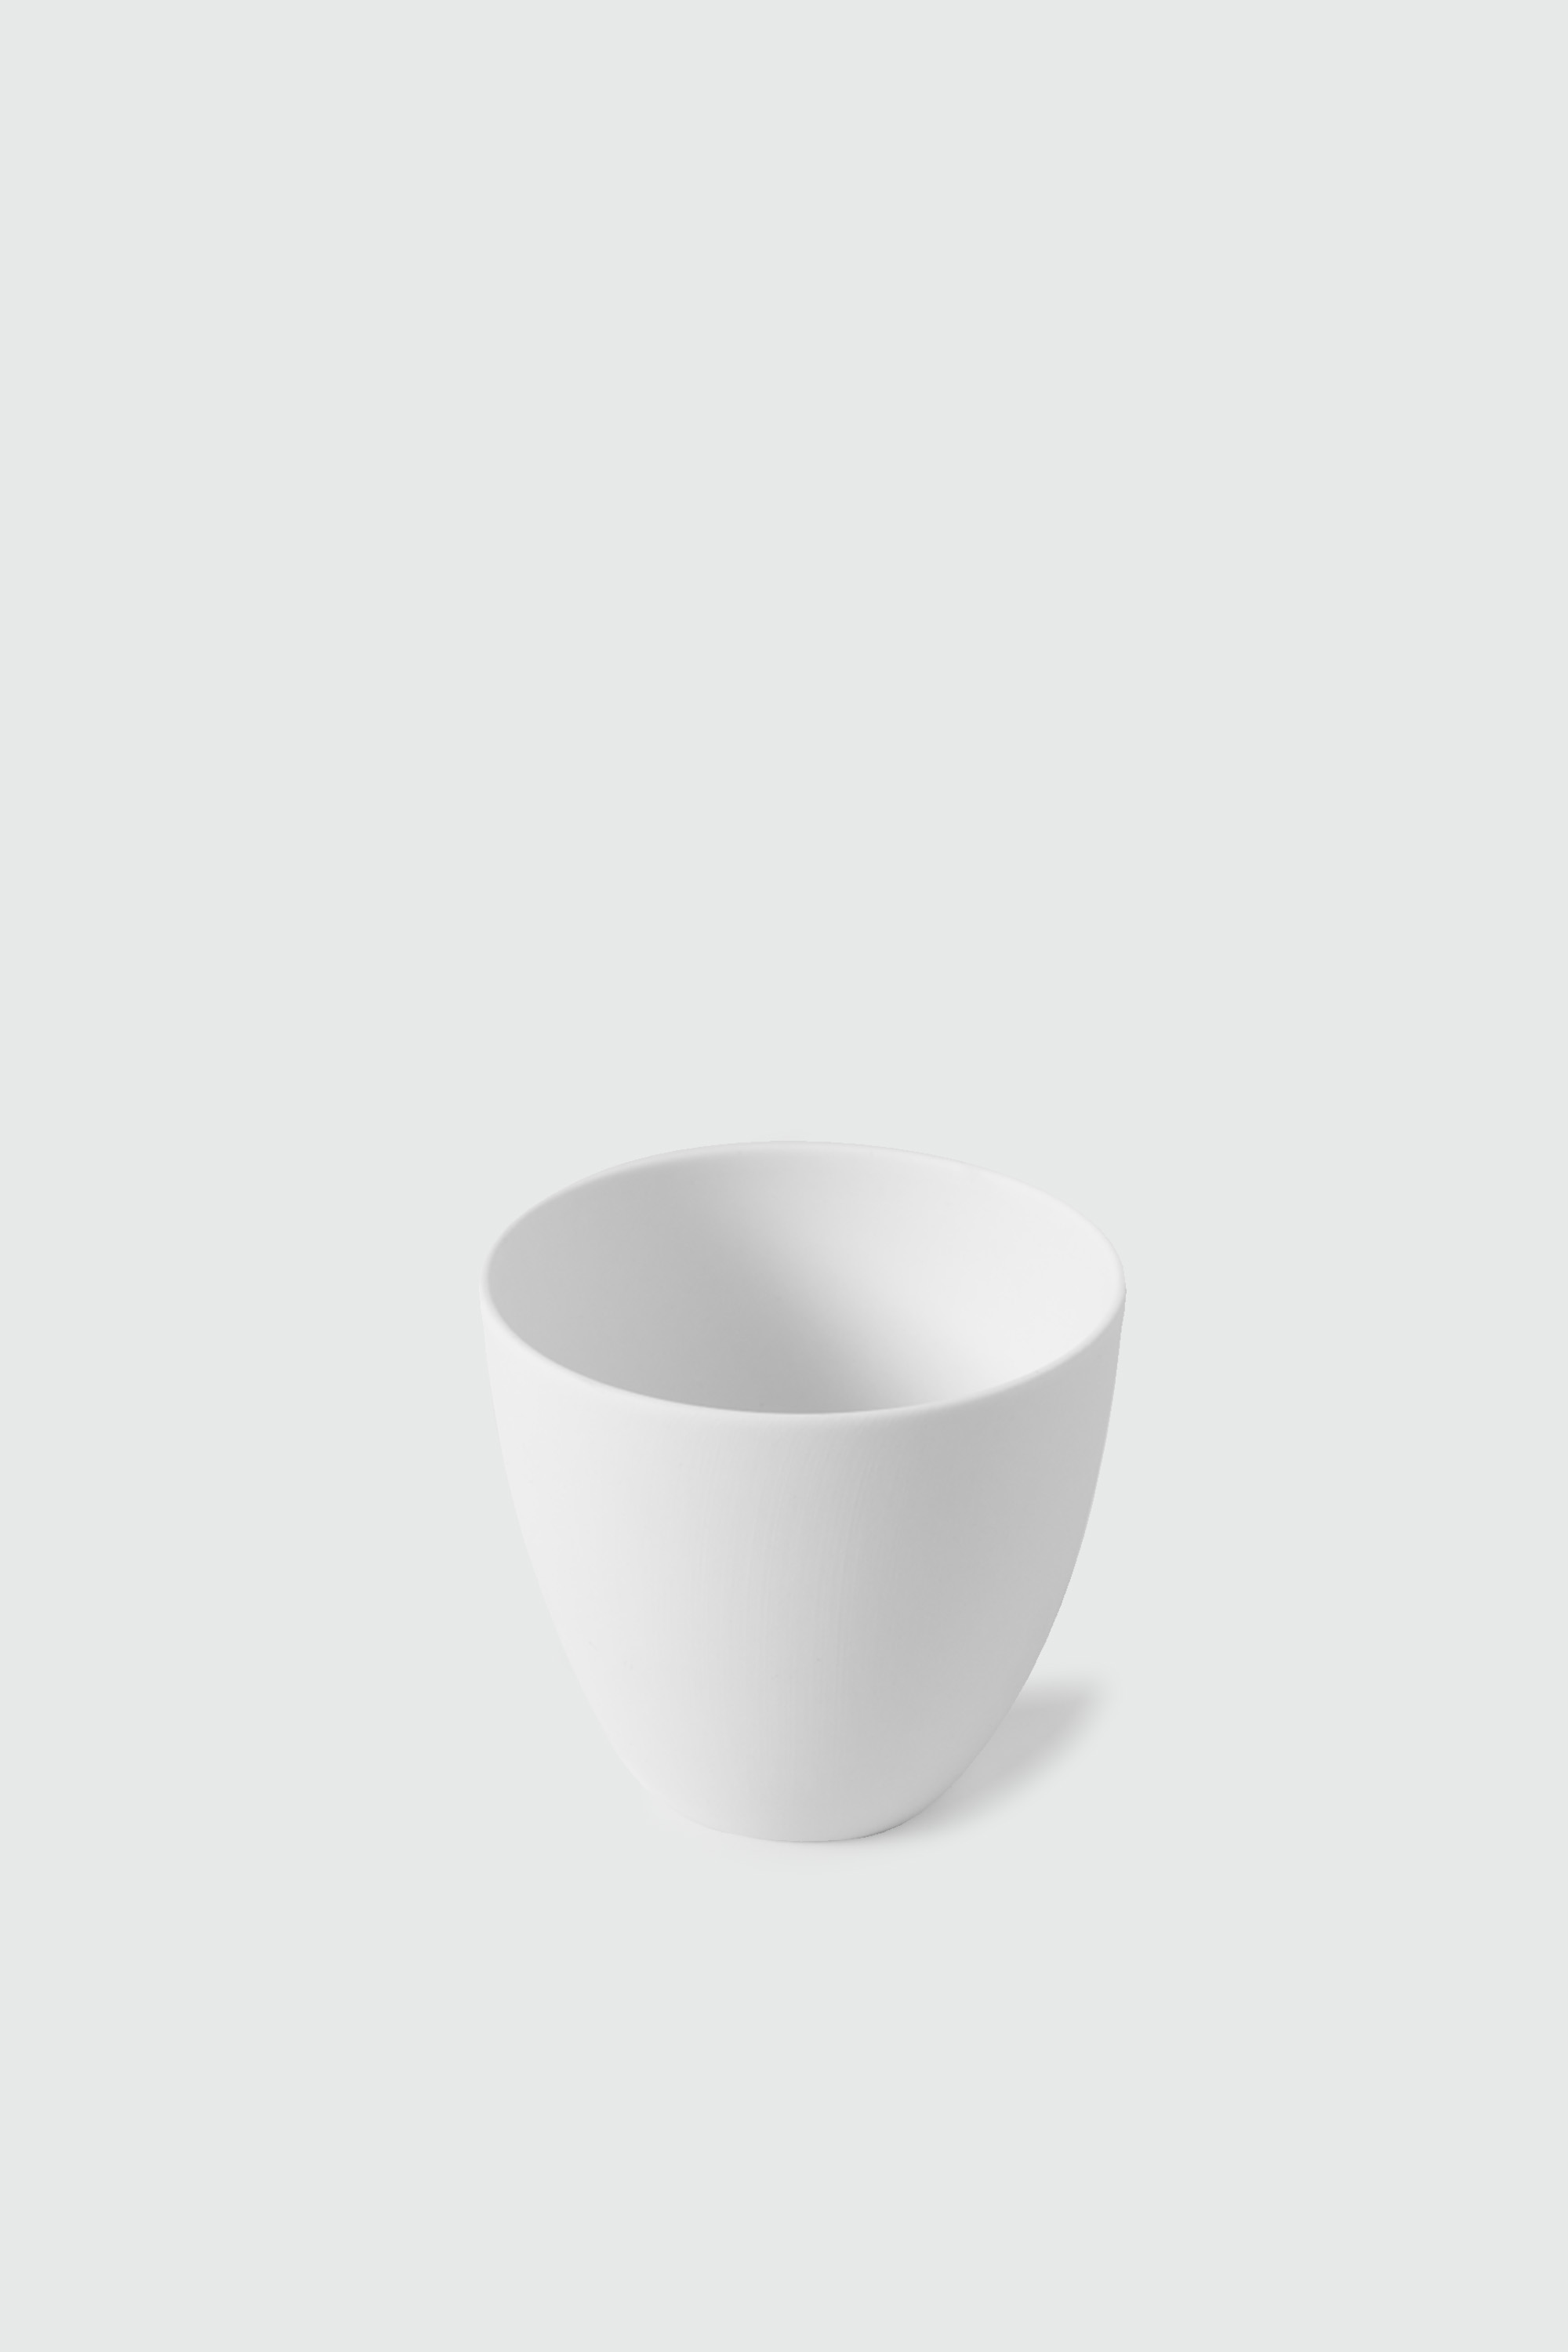 Tapered Porcelain Cup 2941 White 4